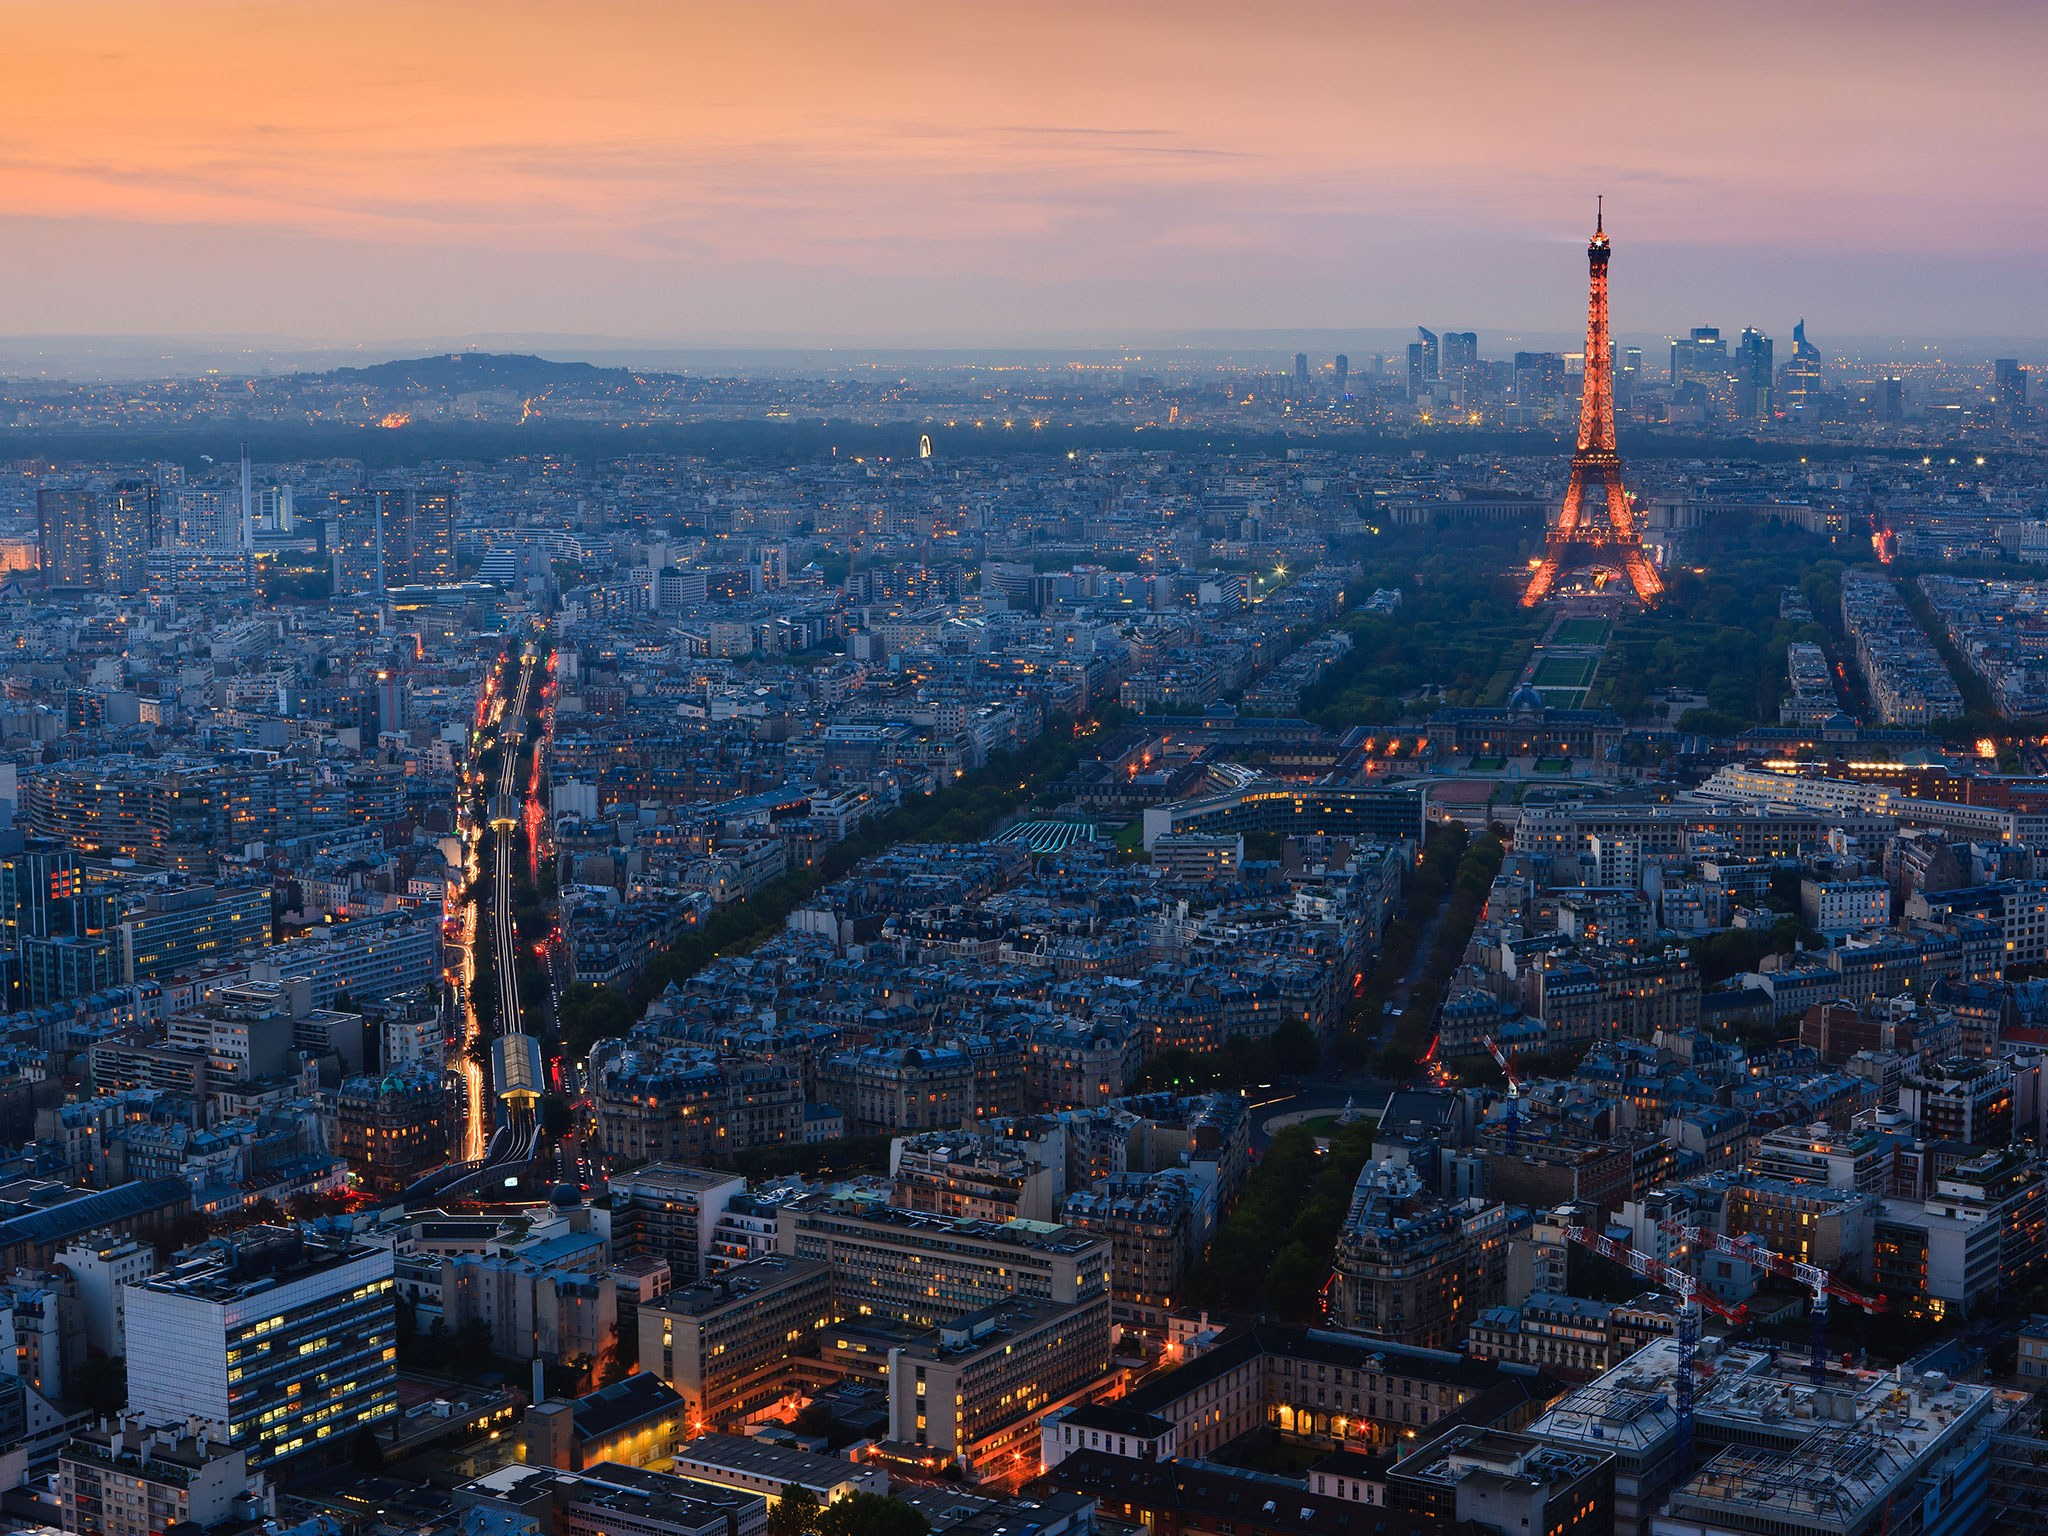 Eiffel Tower – rare rooftop view